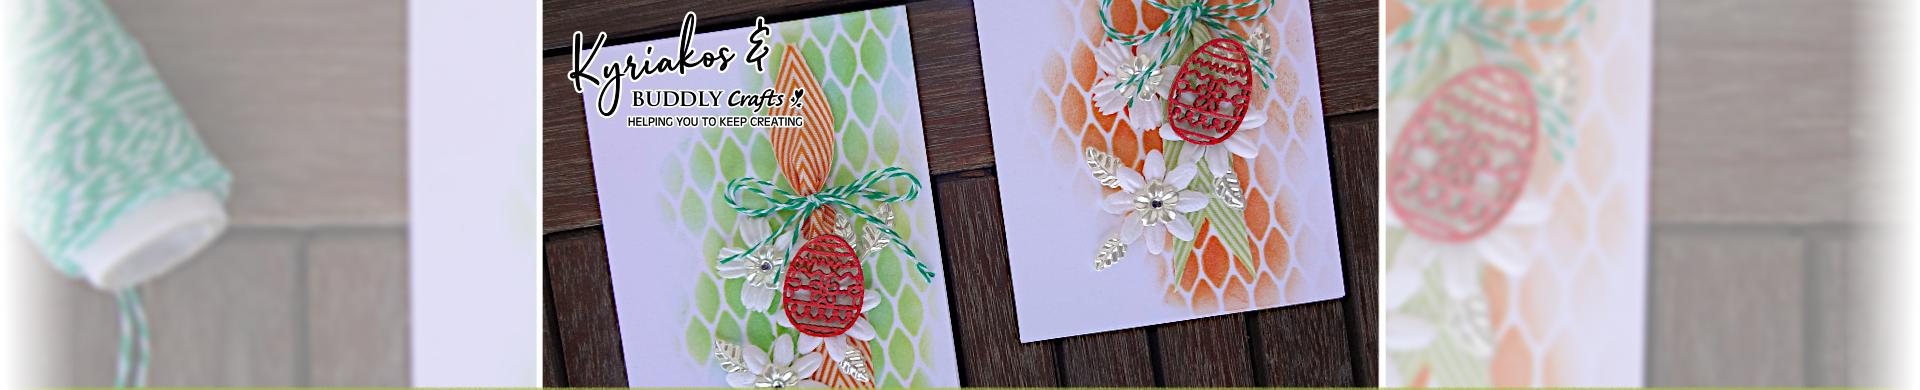 Mini Easter Candle Cards